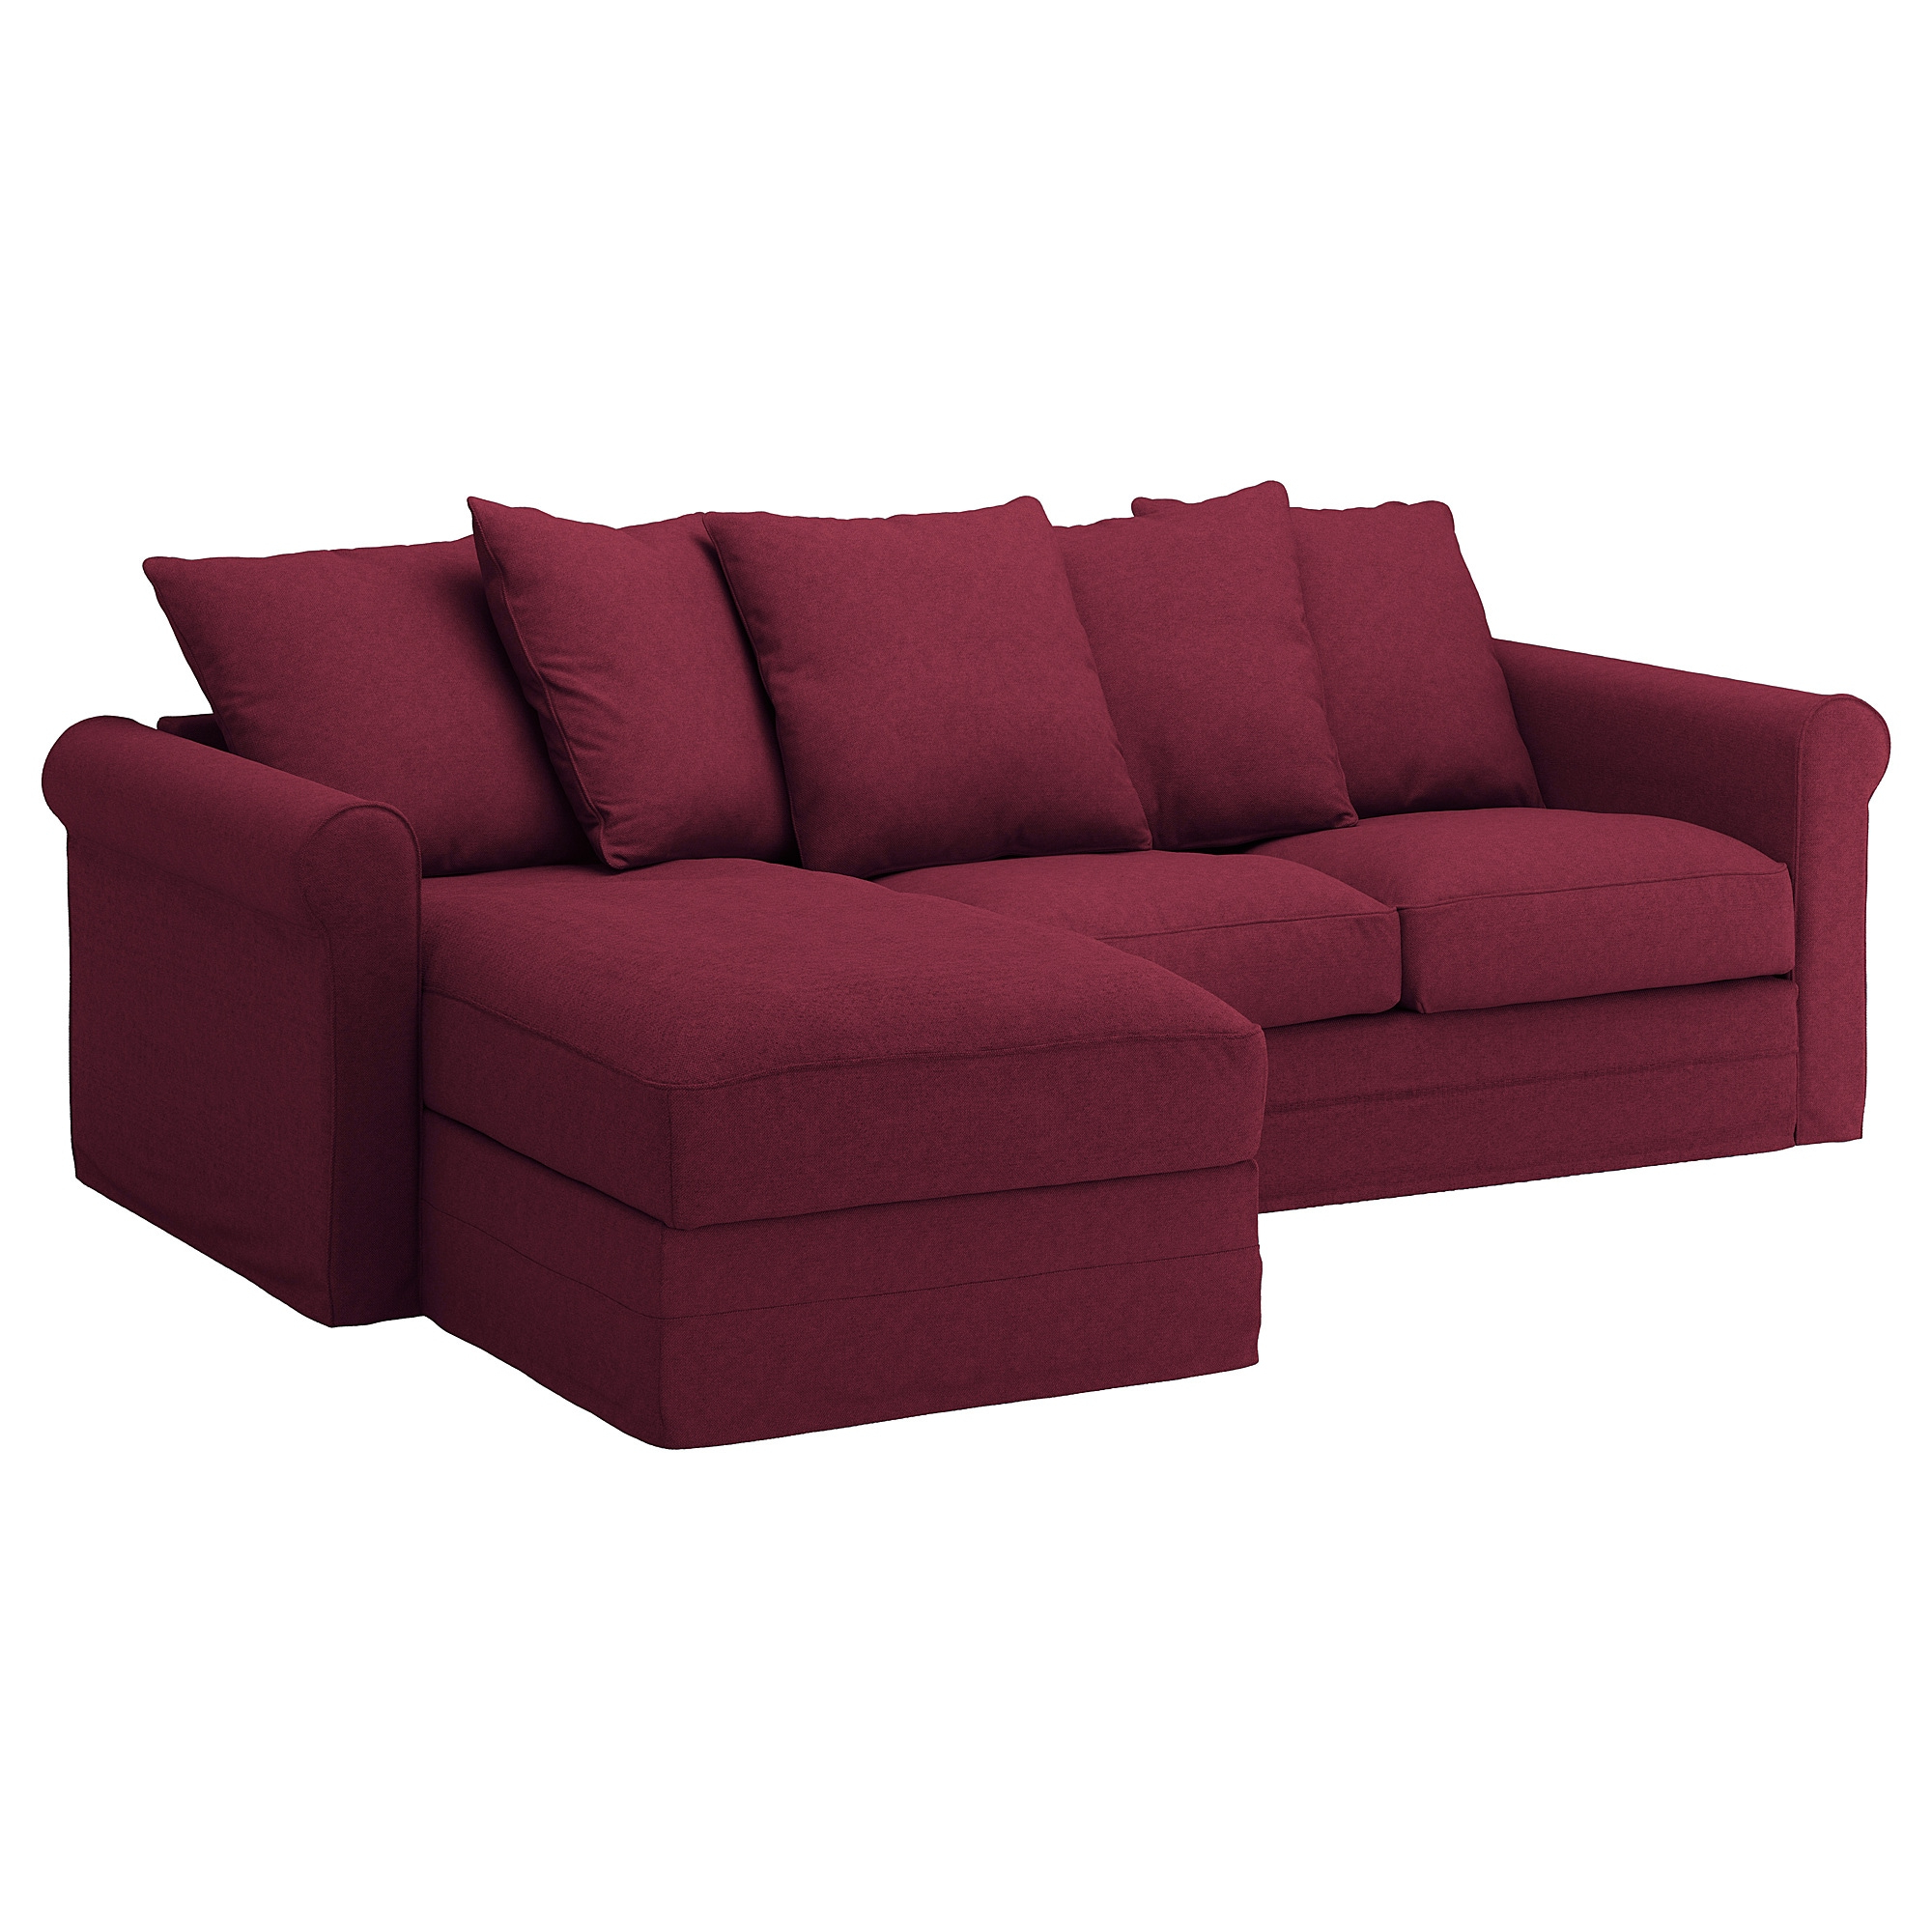 Sofa And Chair Covers Throughout Popular Sofa Covers (View 18 of 20)